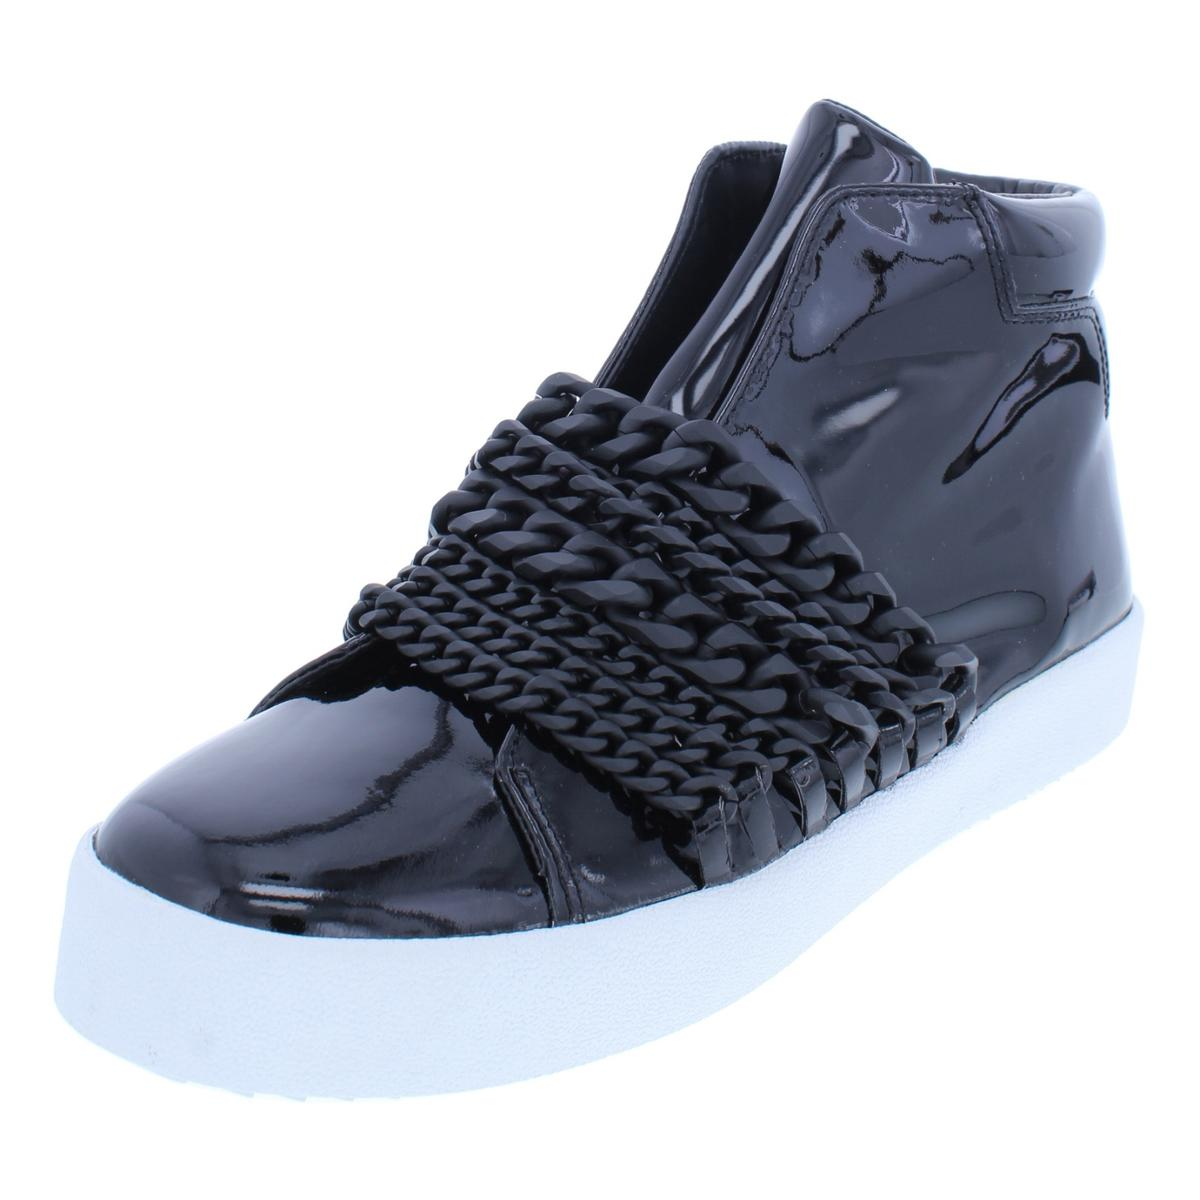 6982777111059 Details about Kendall + Kylie Womens Duke Patent High Top Fashion Sneakers  Shoes BHFO 7854